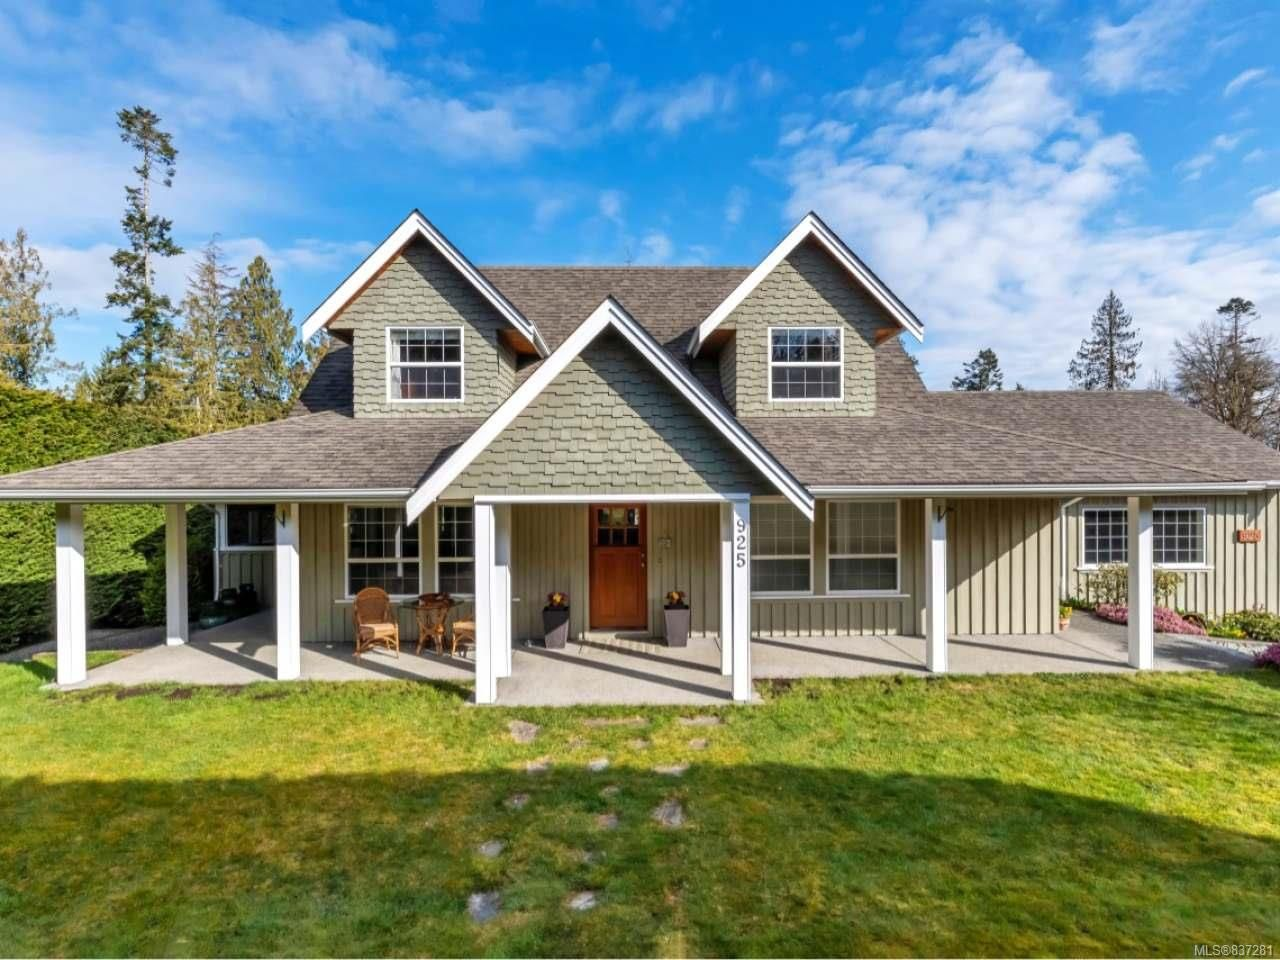 Photo 34: Photos: 925 Lilmac Rd in MILL BAY: ML Mill Bay House for sale (Malahat & Area)  : MLS®# 837281